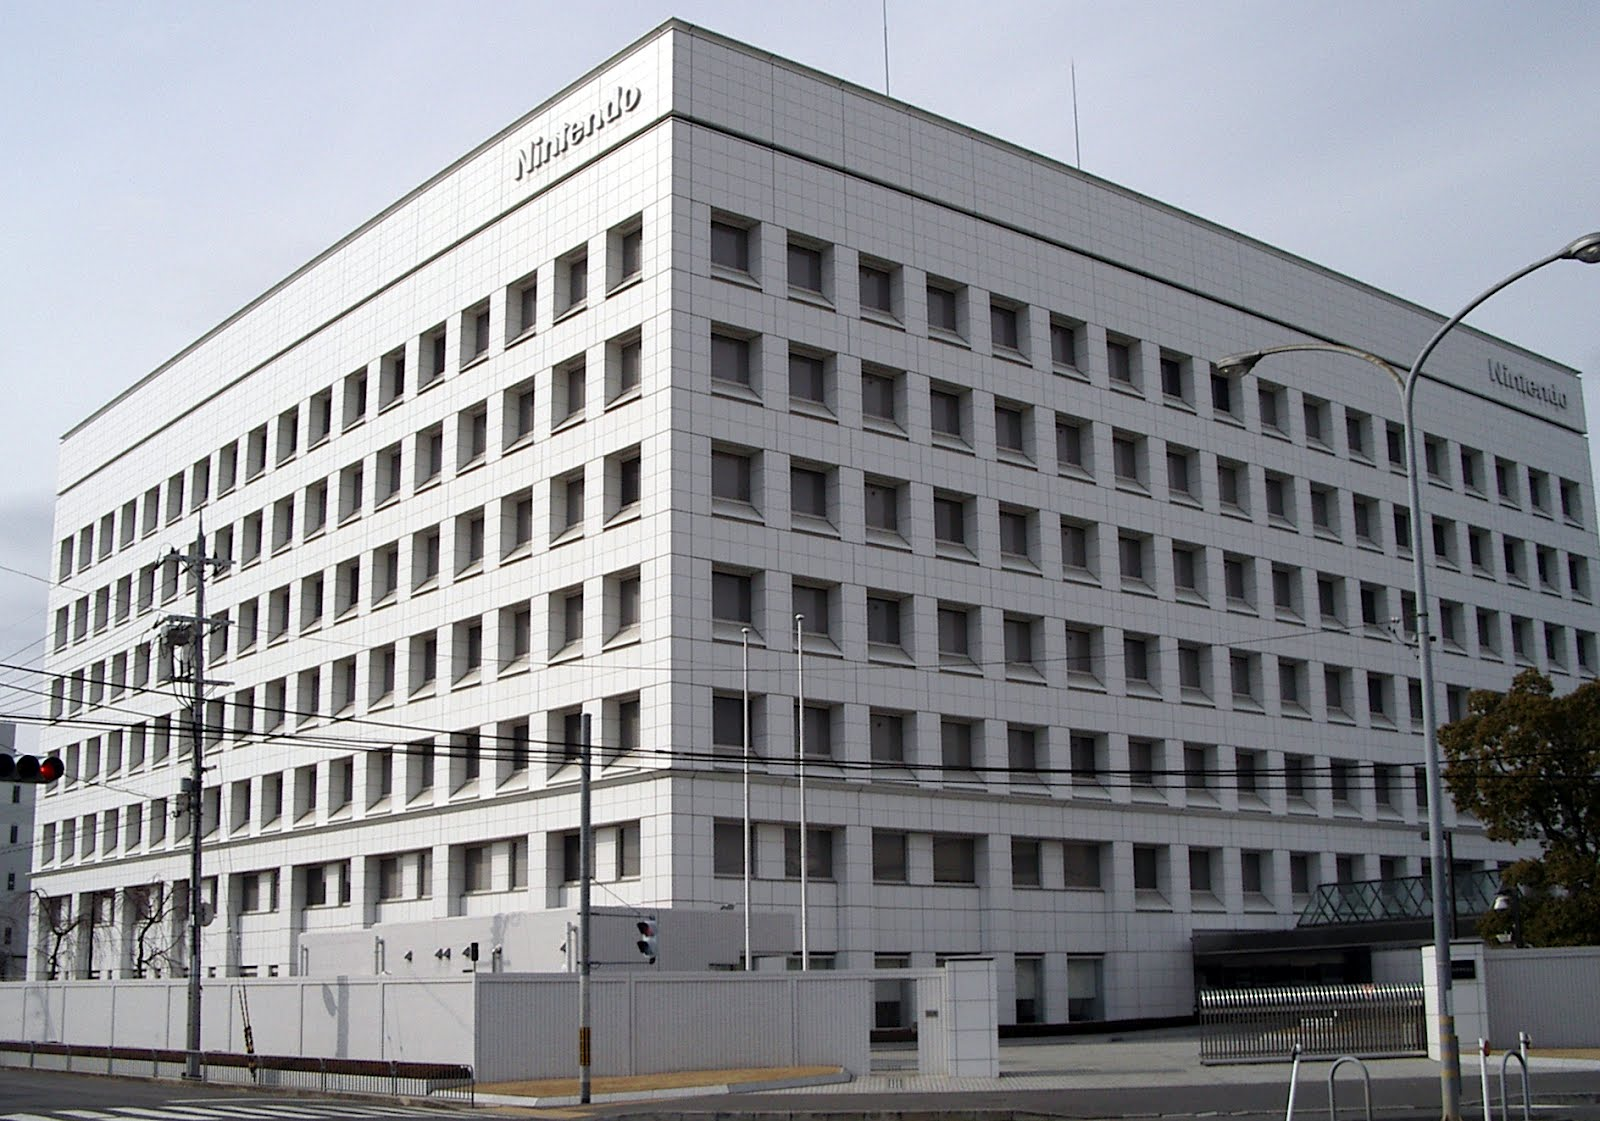 Nintendo%20Office%20-%20Kyoto%20HQ.jpg